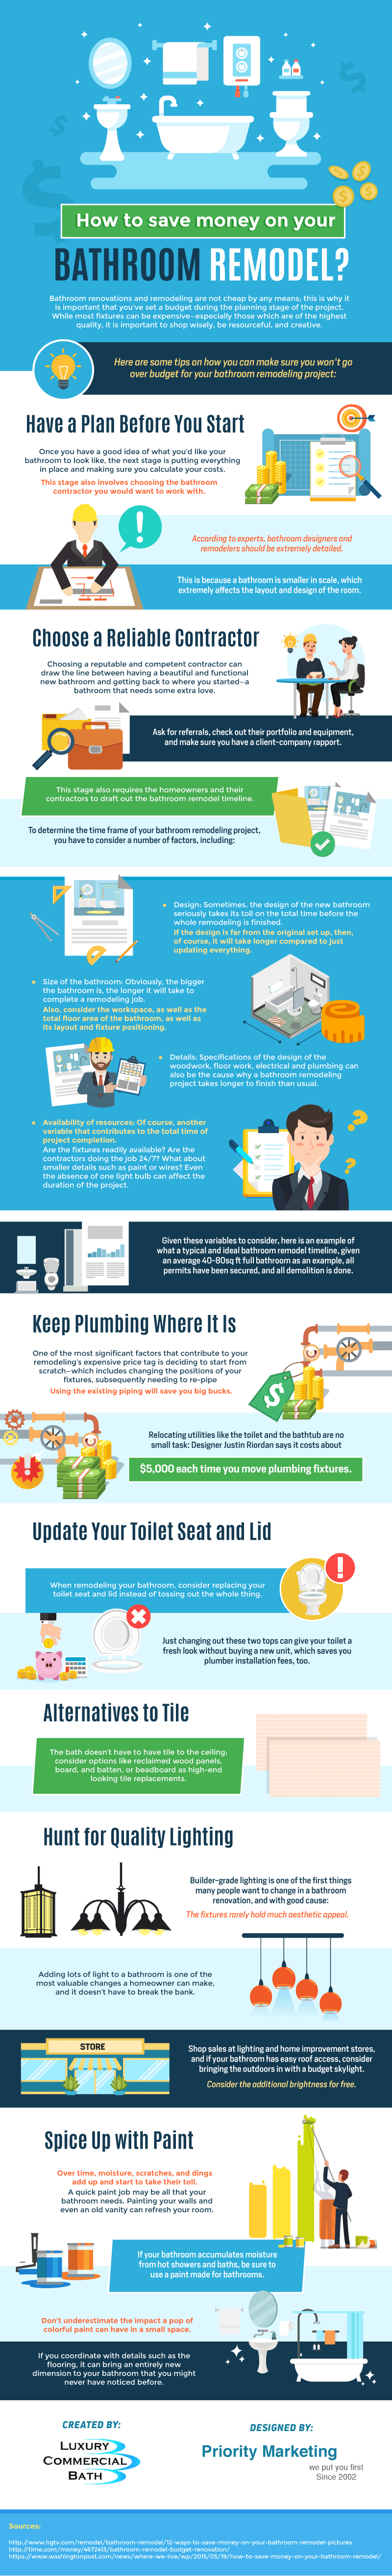 How To Save Money On Your Bathroom Remodel Infographic Portal - How to save money on bathroom remodel